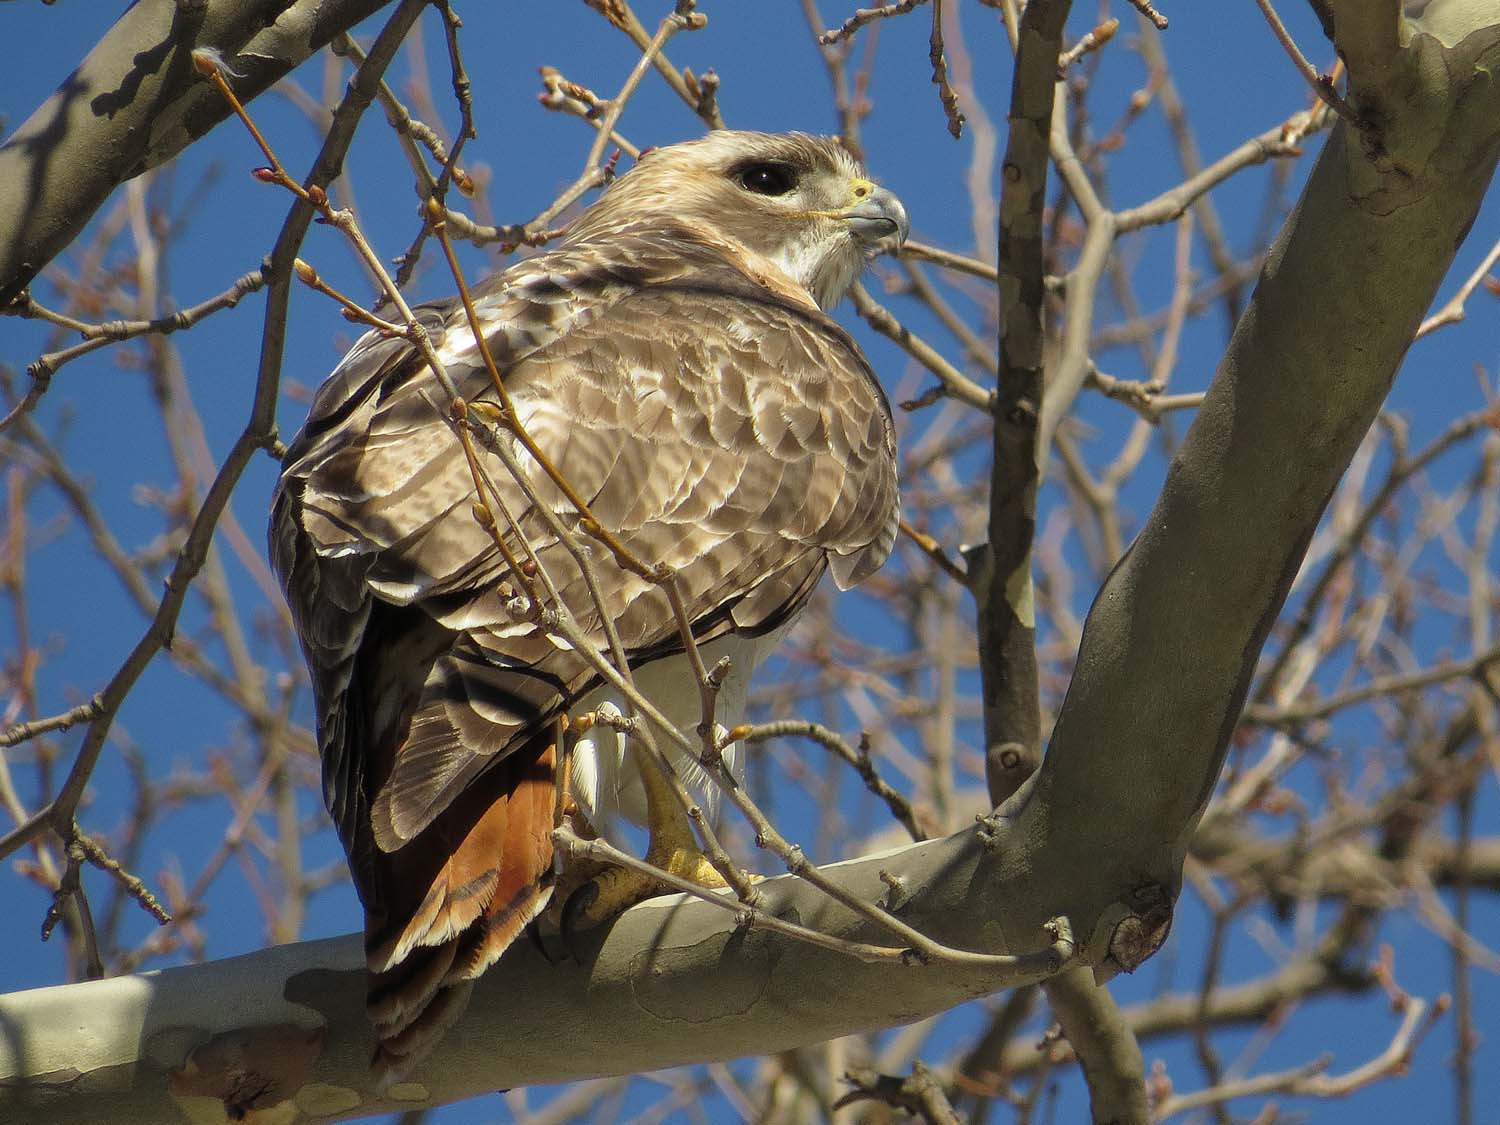 Pale Male, the Ramble, March 19